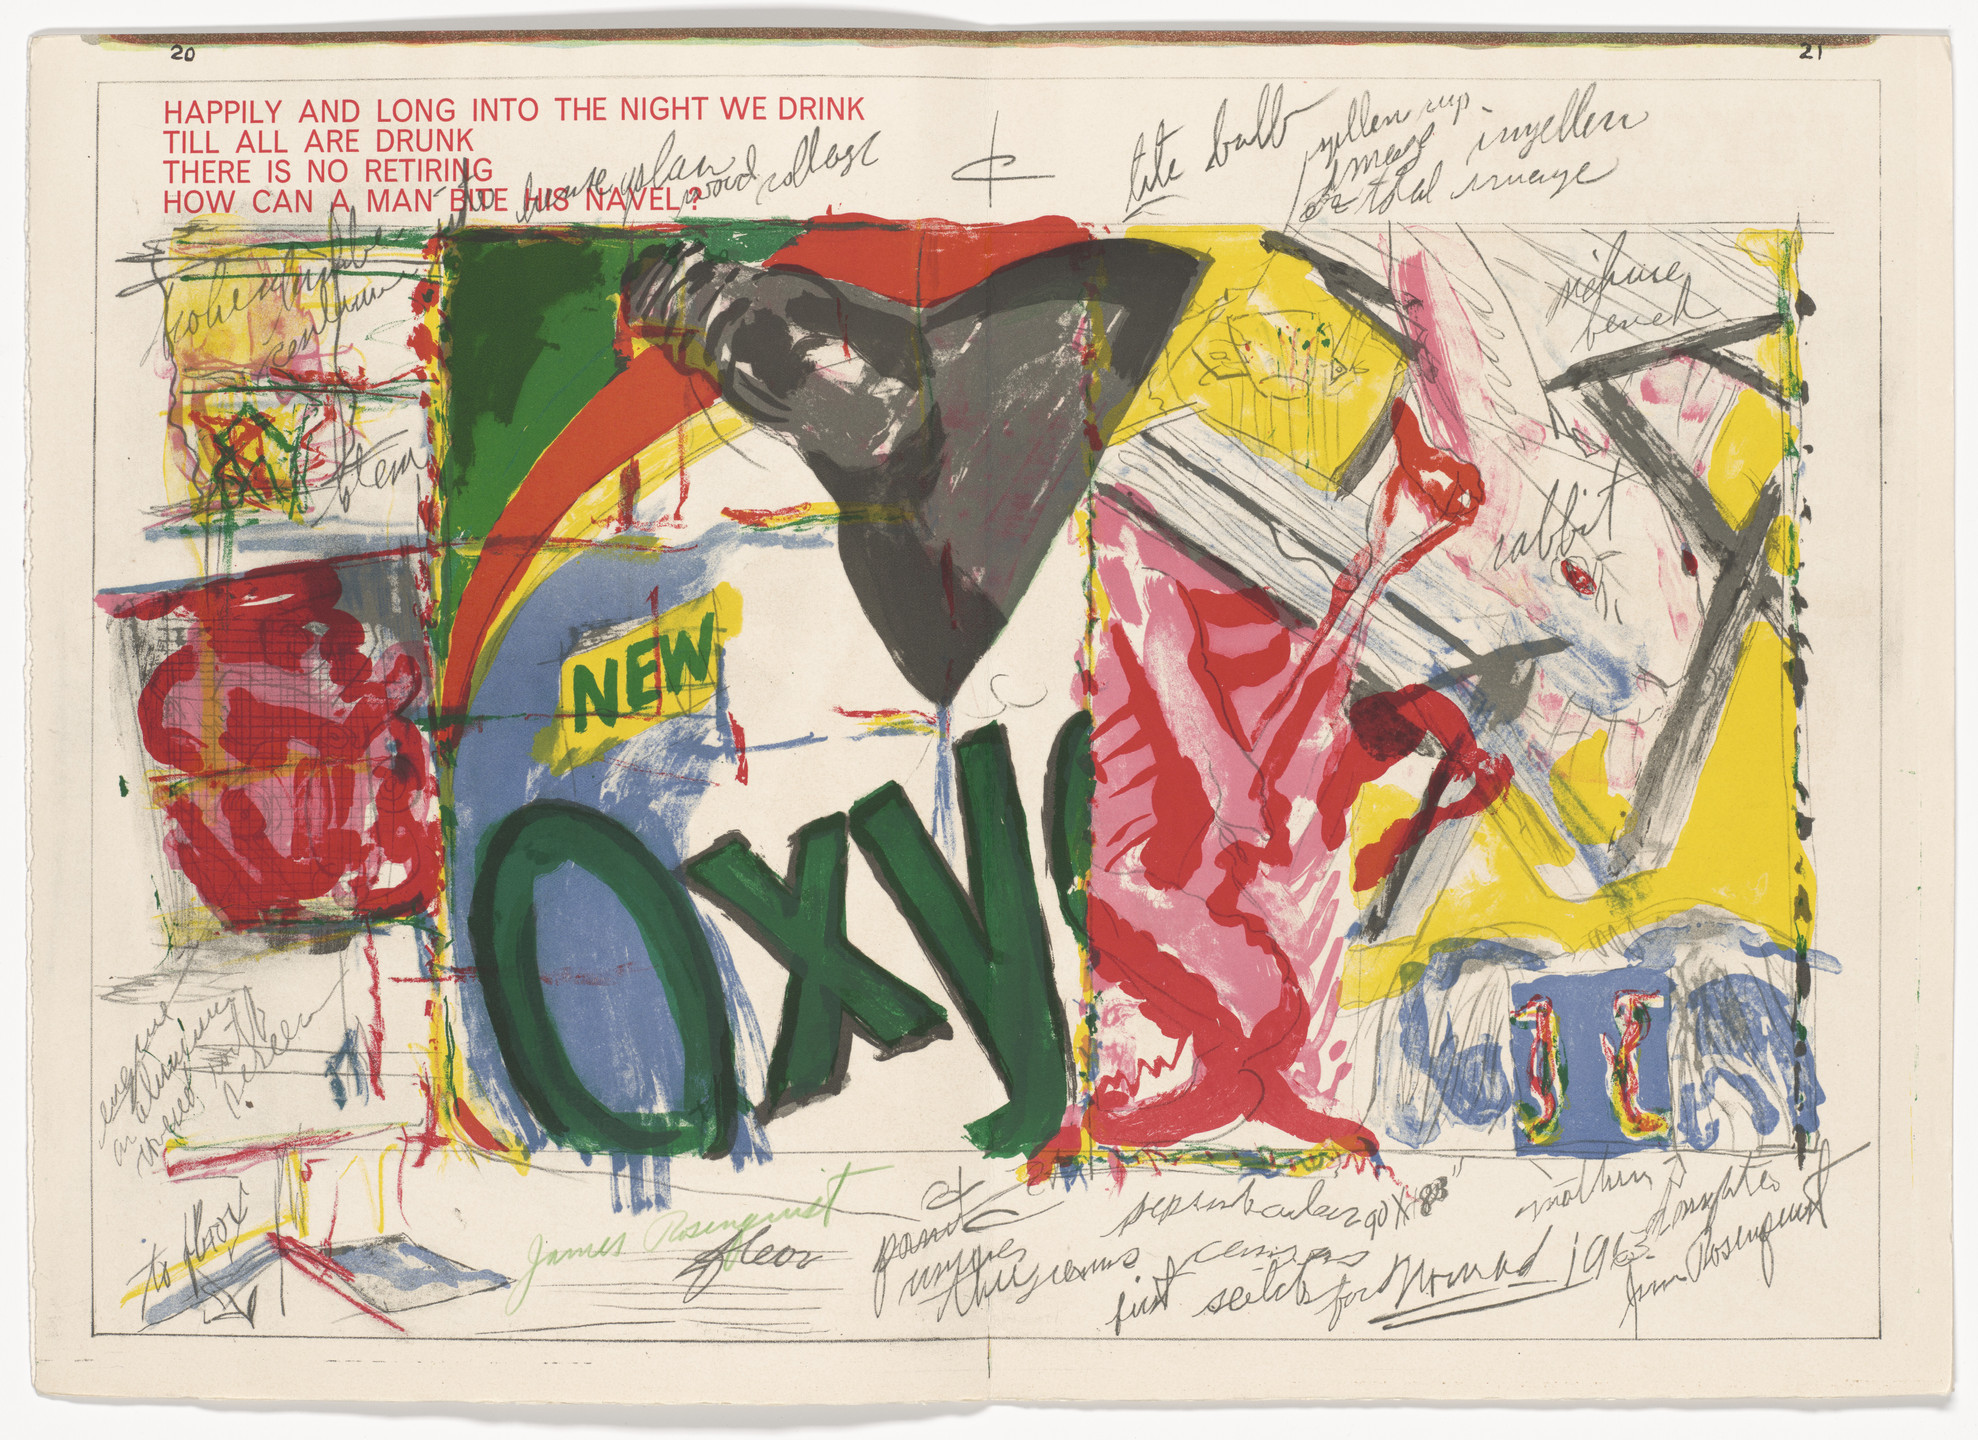 James Rosenquist. Double page plate (pages 20 and 21) from 1¢ Life. 1964